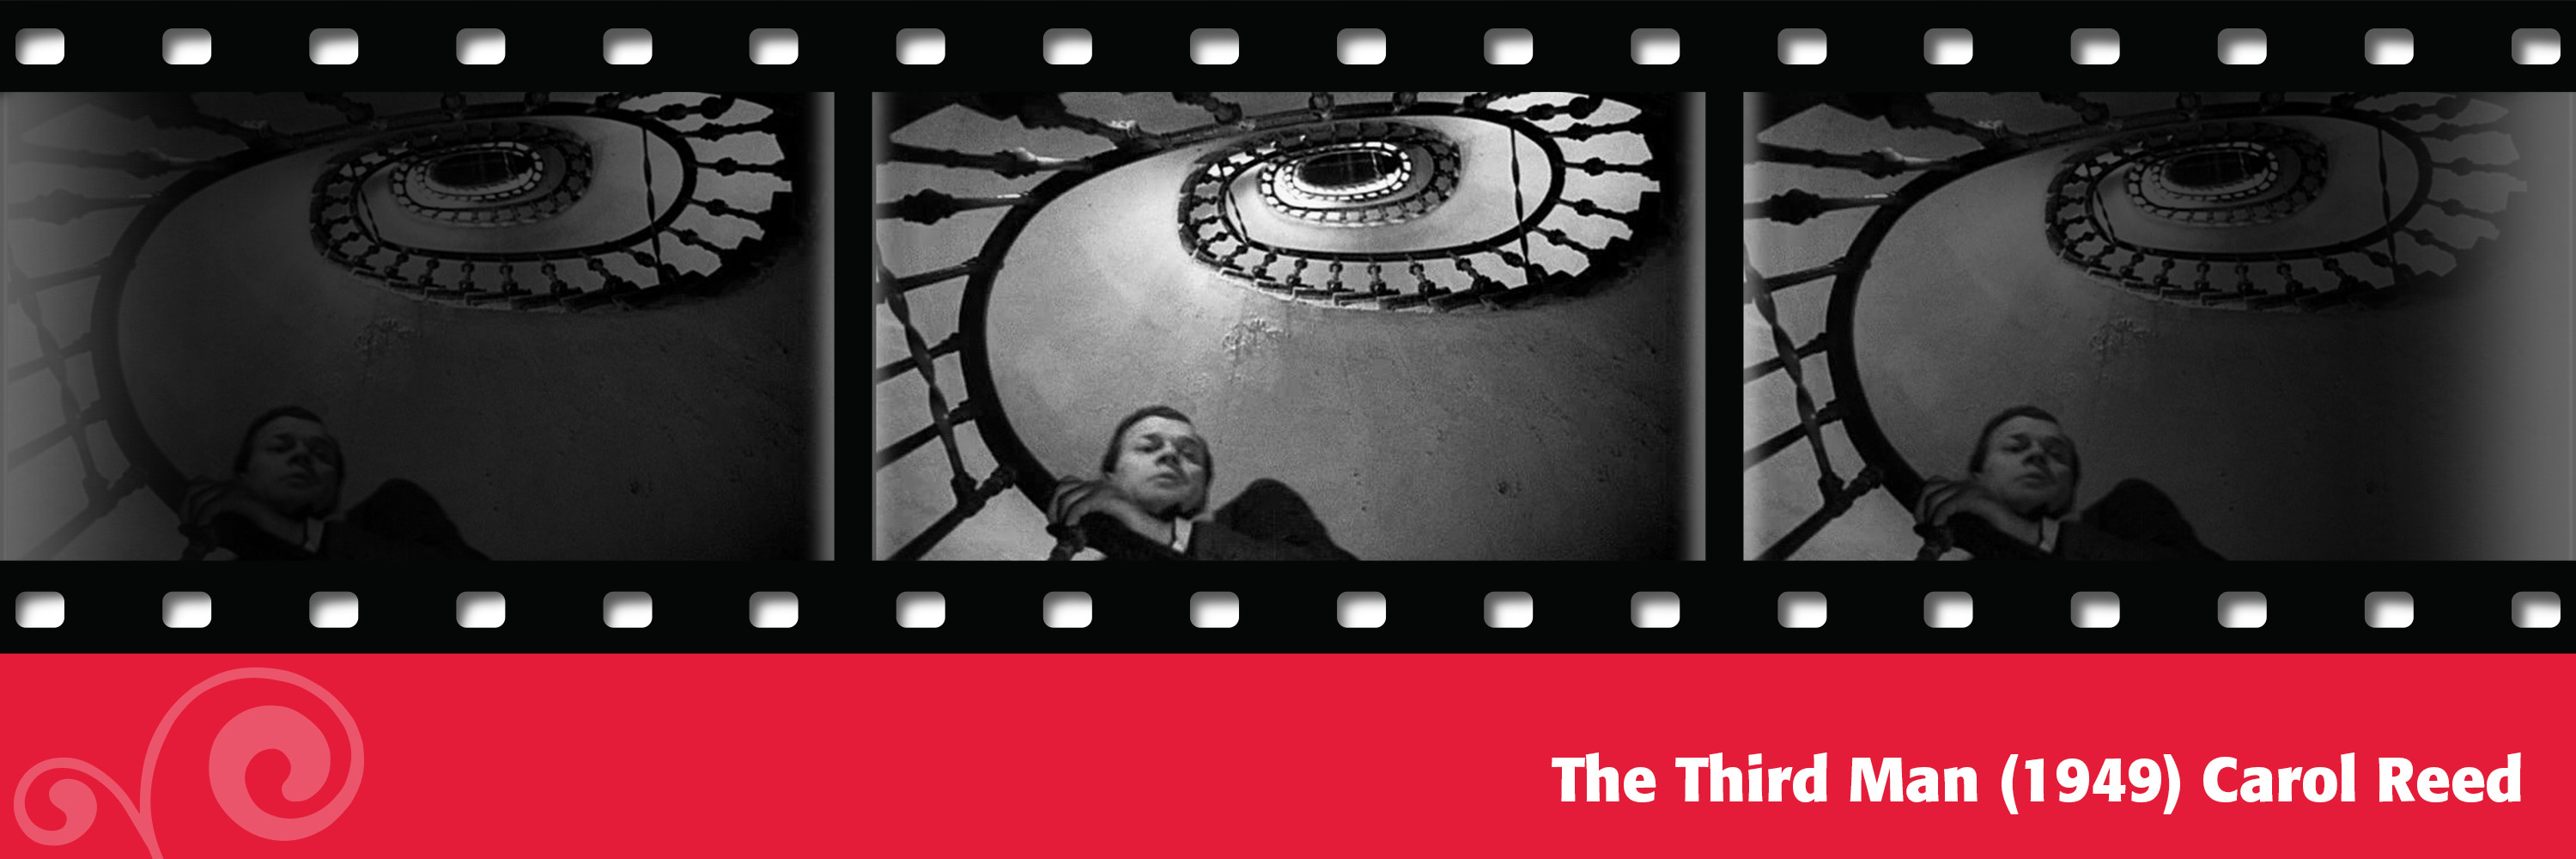 The Third Man (1949) Carol Reed